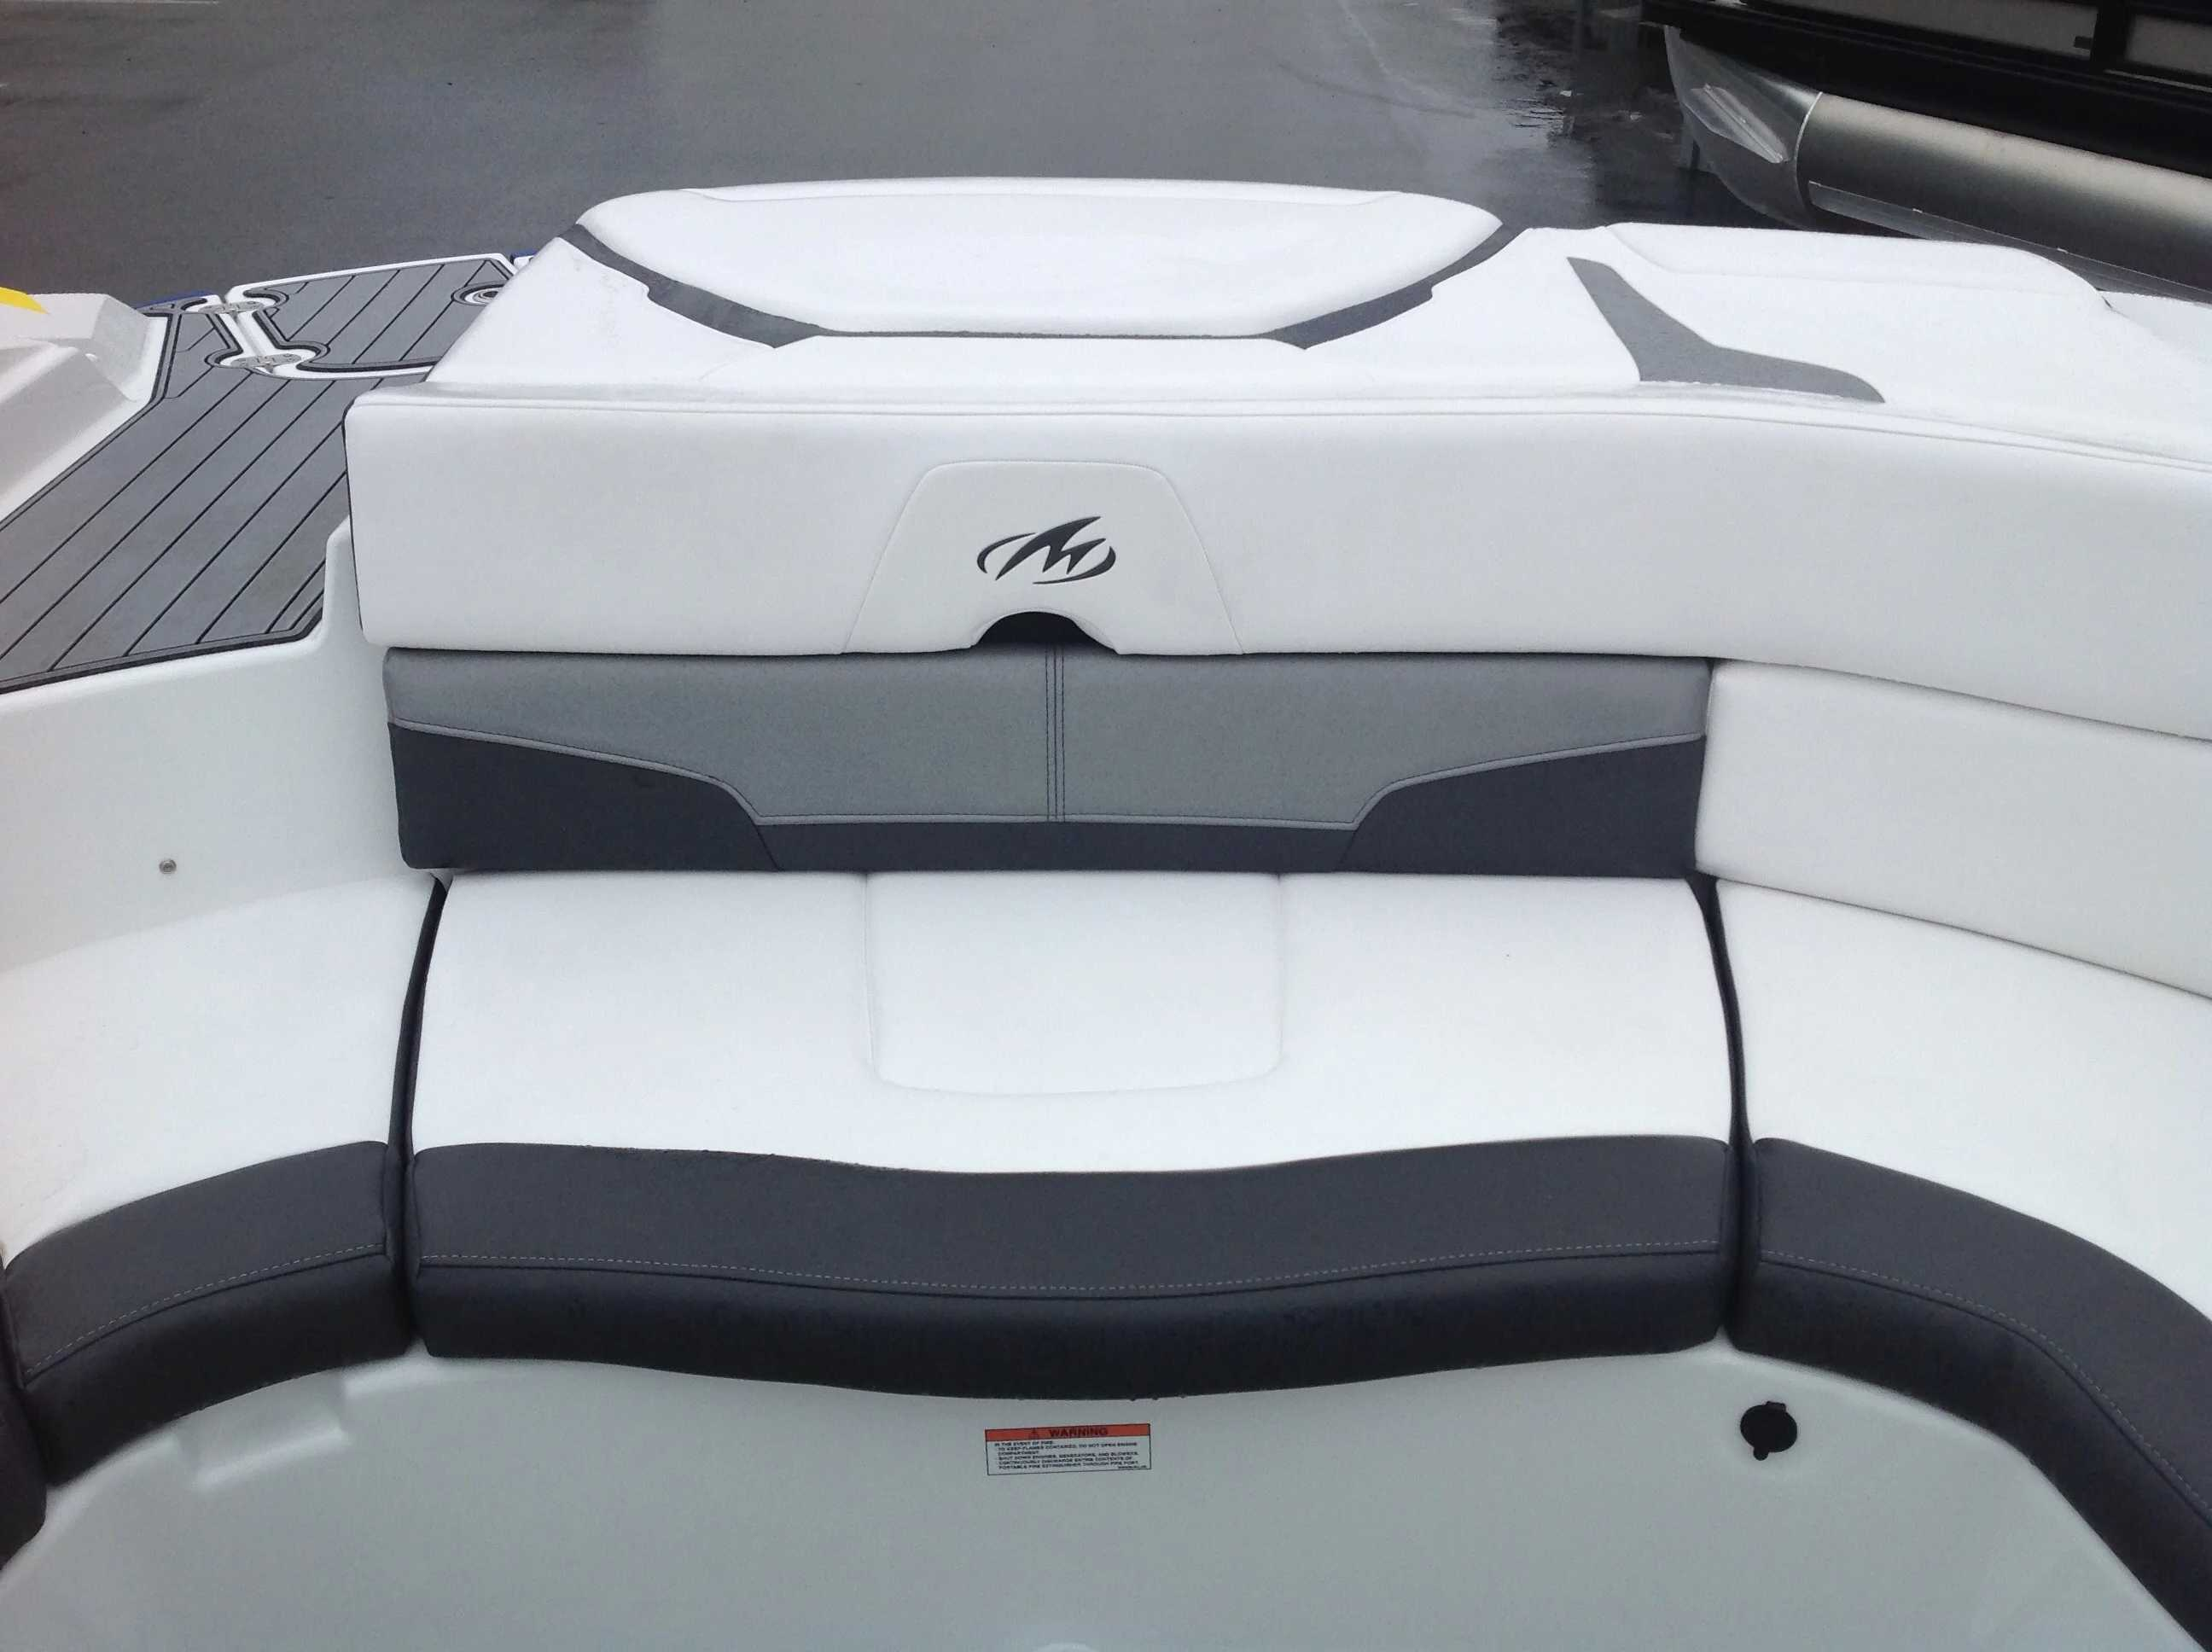 2021 Monterey boat for sale, model of the boat is 224FS & Image # 10 of 11